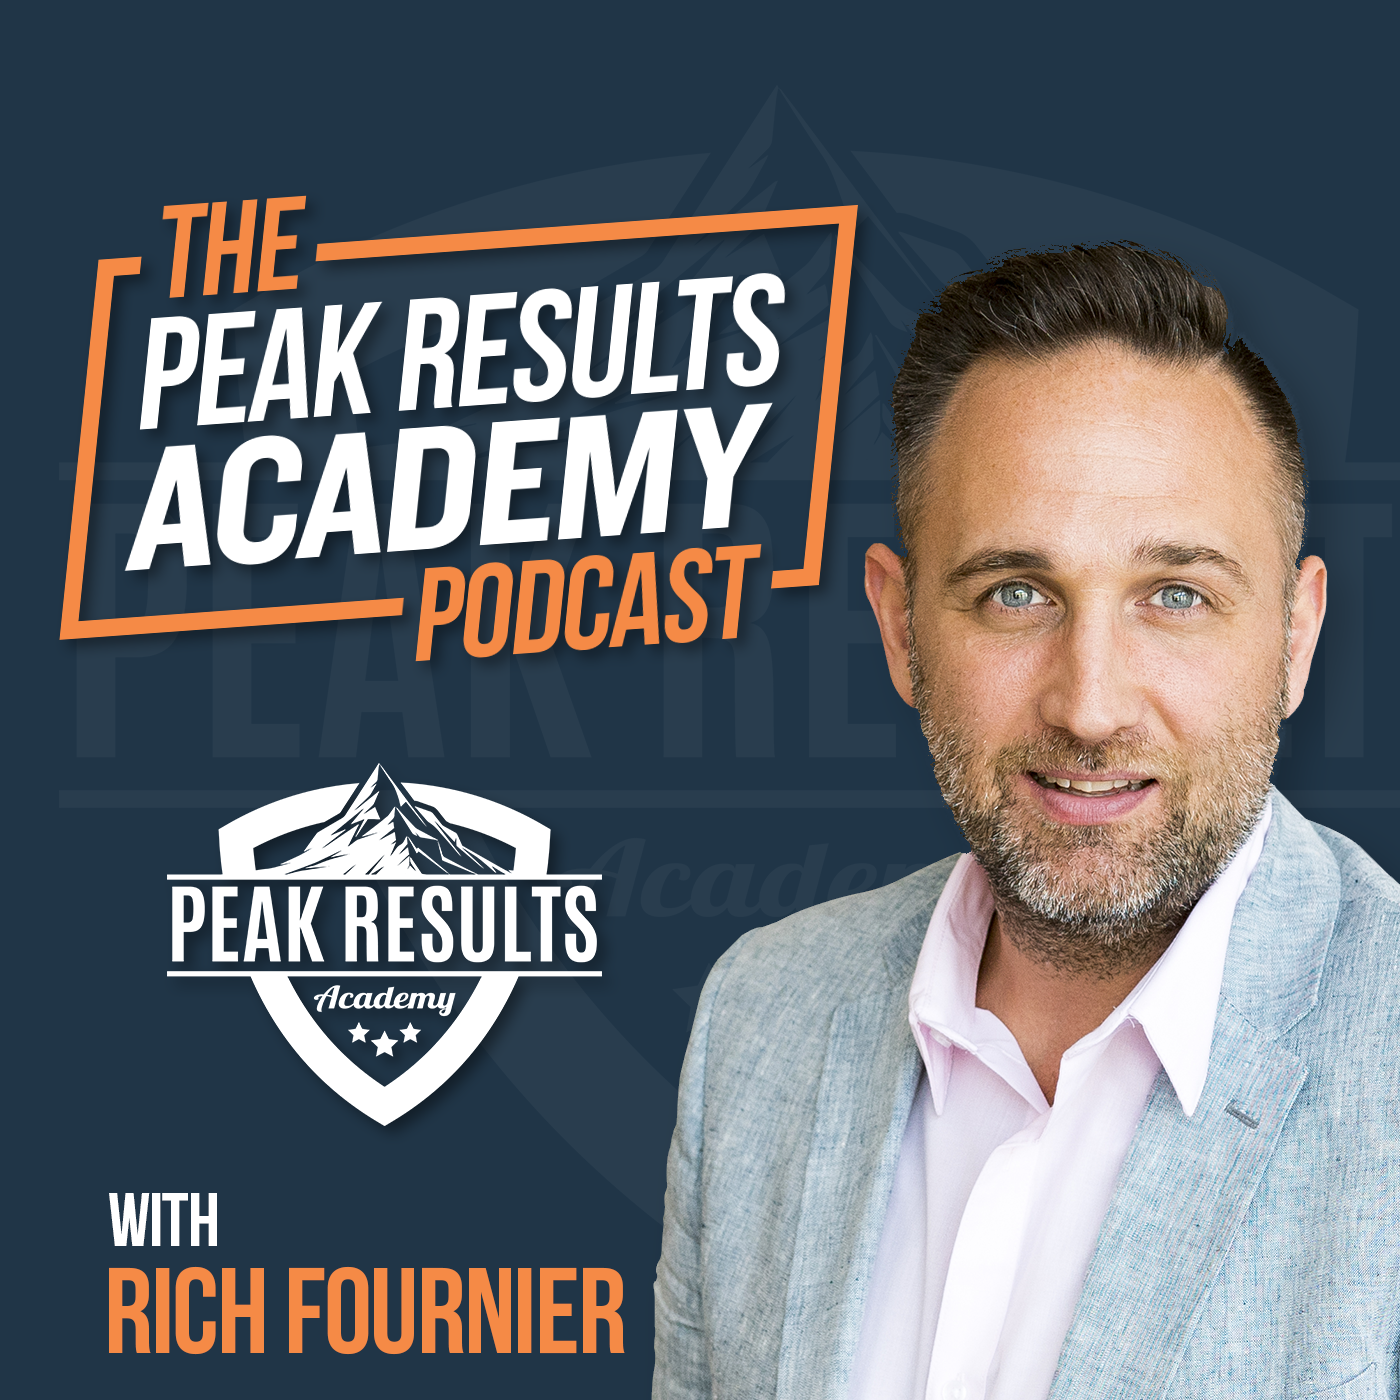 Artwork for podcast The Peak Results Academy Podcast